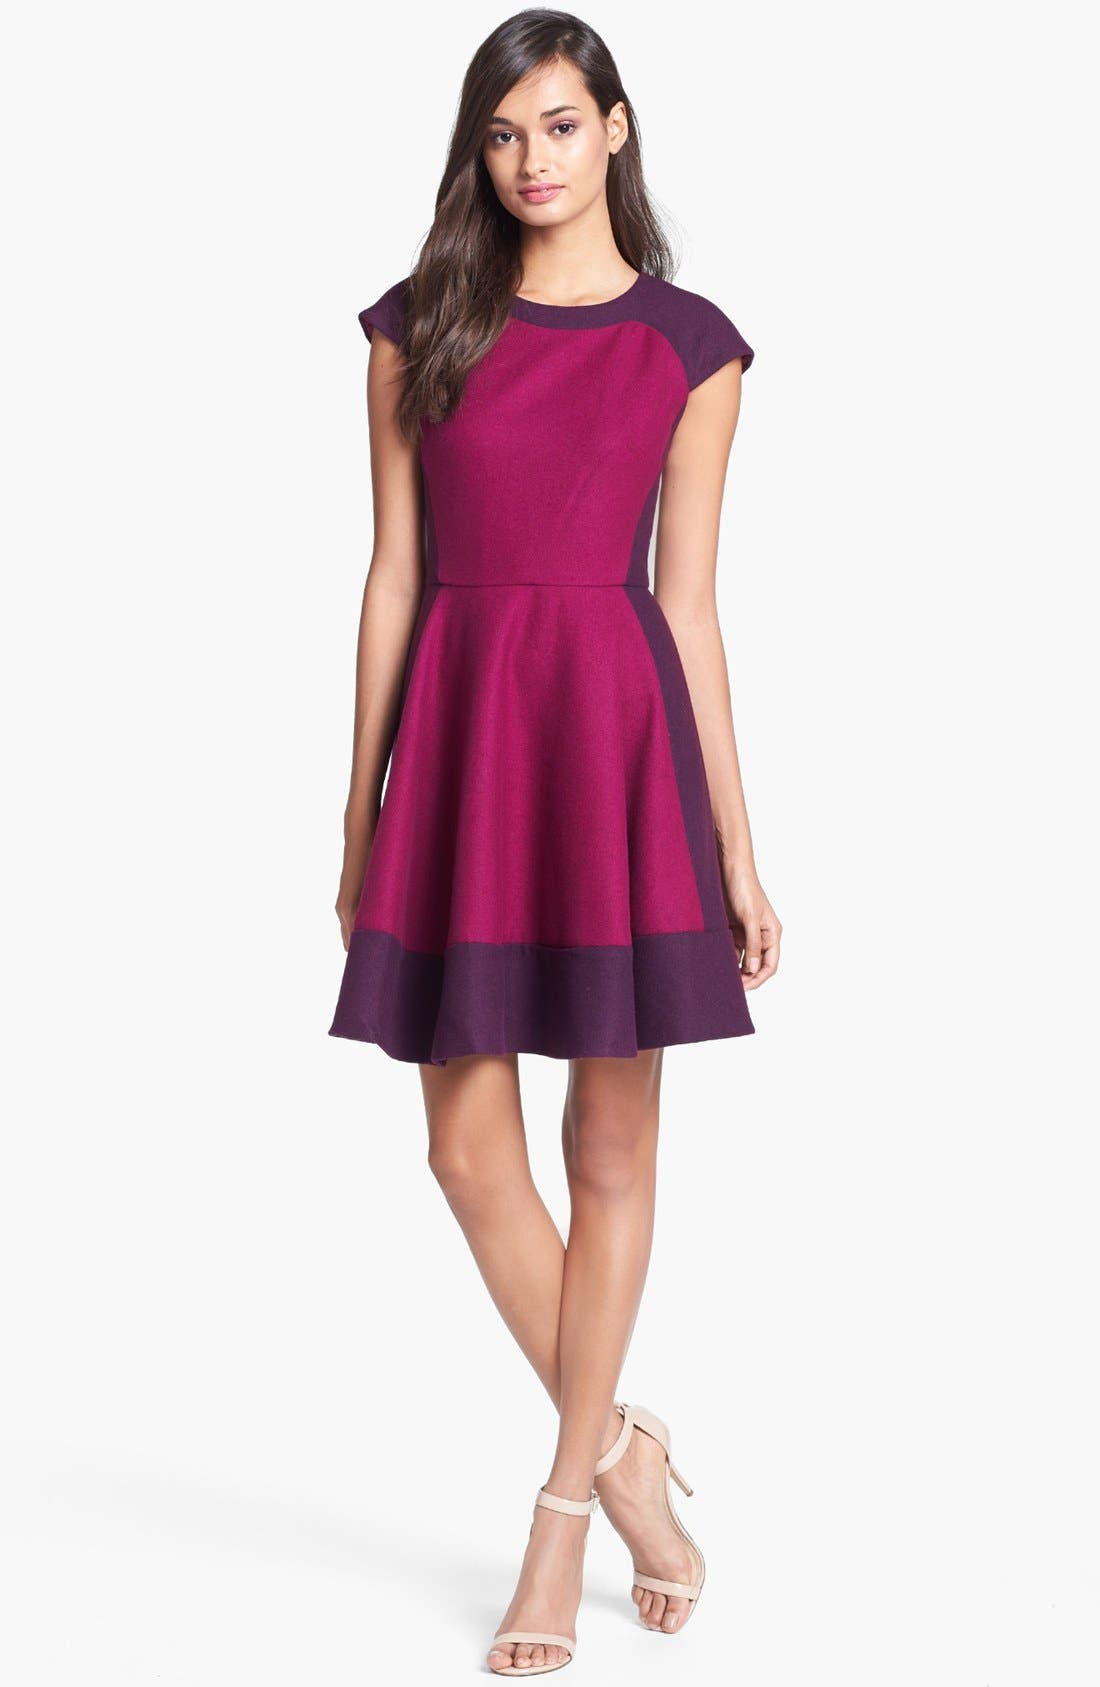 Alternate Image 1 Selected - Ted Baker London Colorblock Woven A-Line Dress